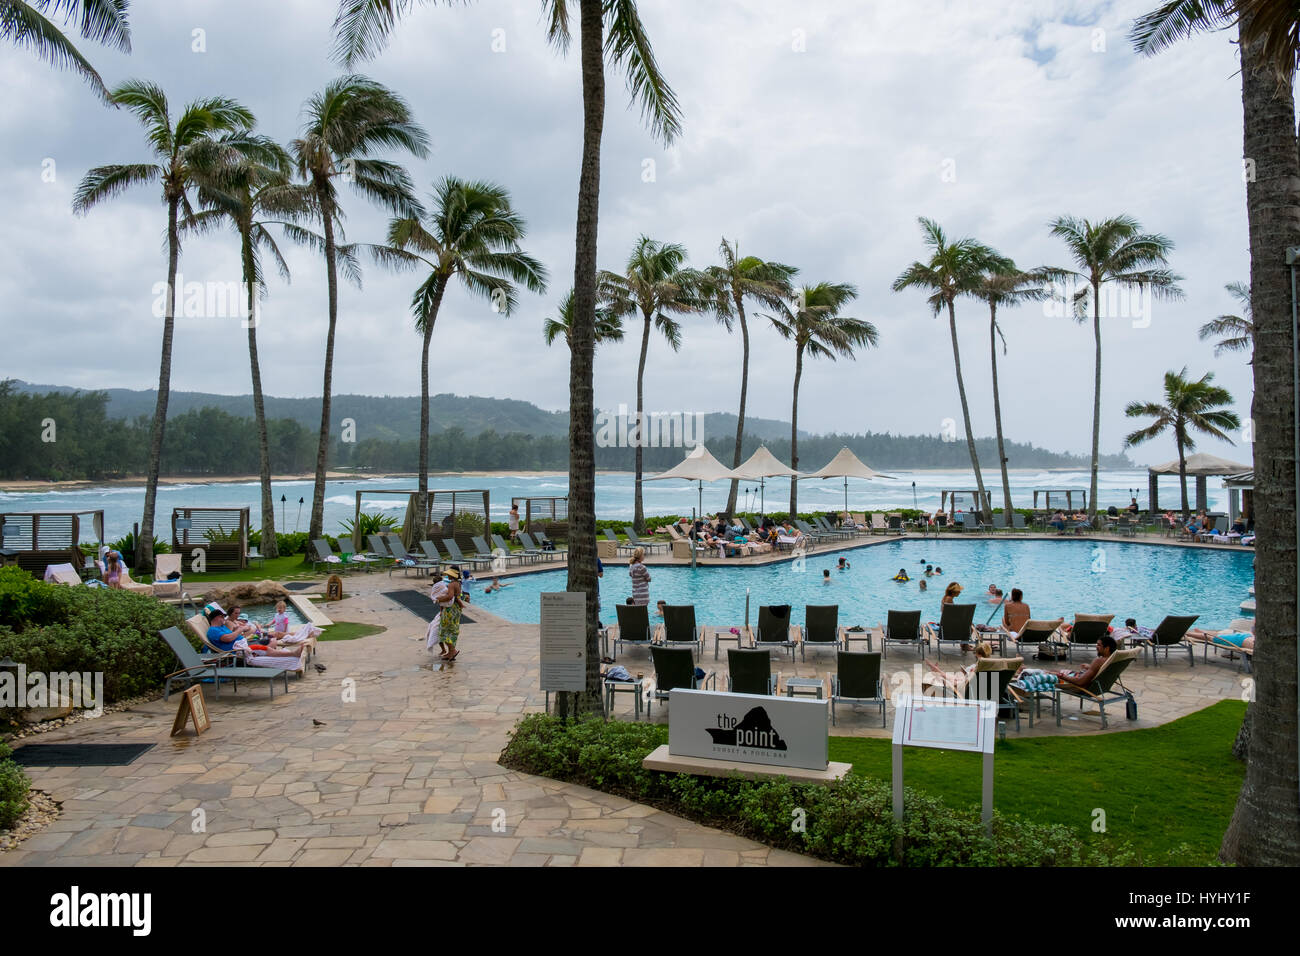 TURTLE BAY, OAHU, HAWAII - FEBRUARY 19, 2017: Pool and famed restaurant The Point at Turtle Bay Resort on the Northshore - Stock Image